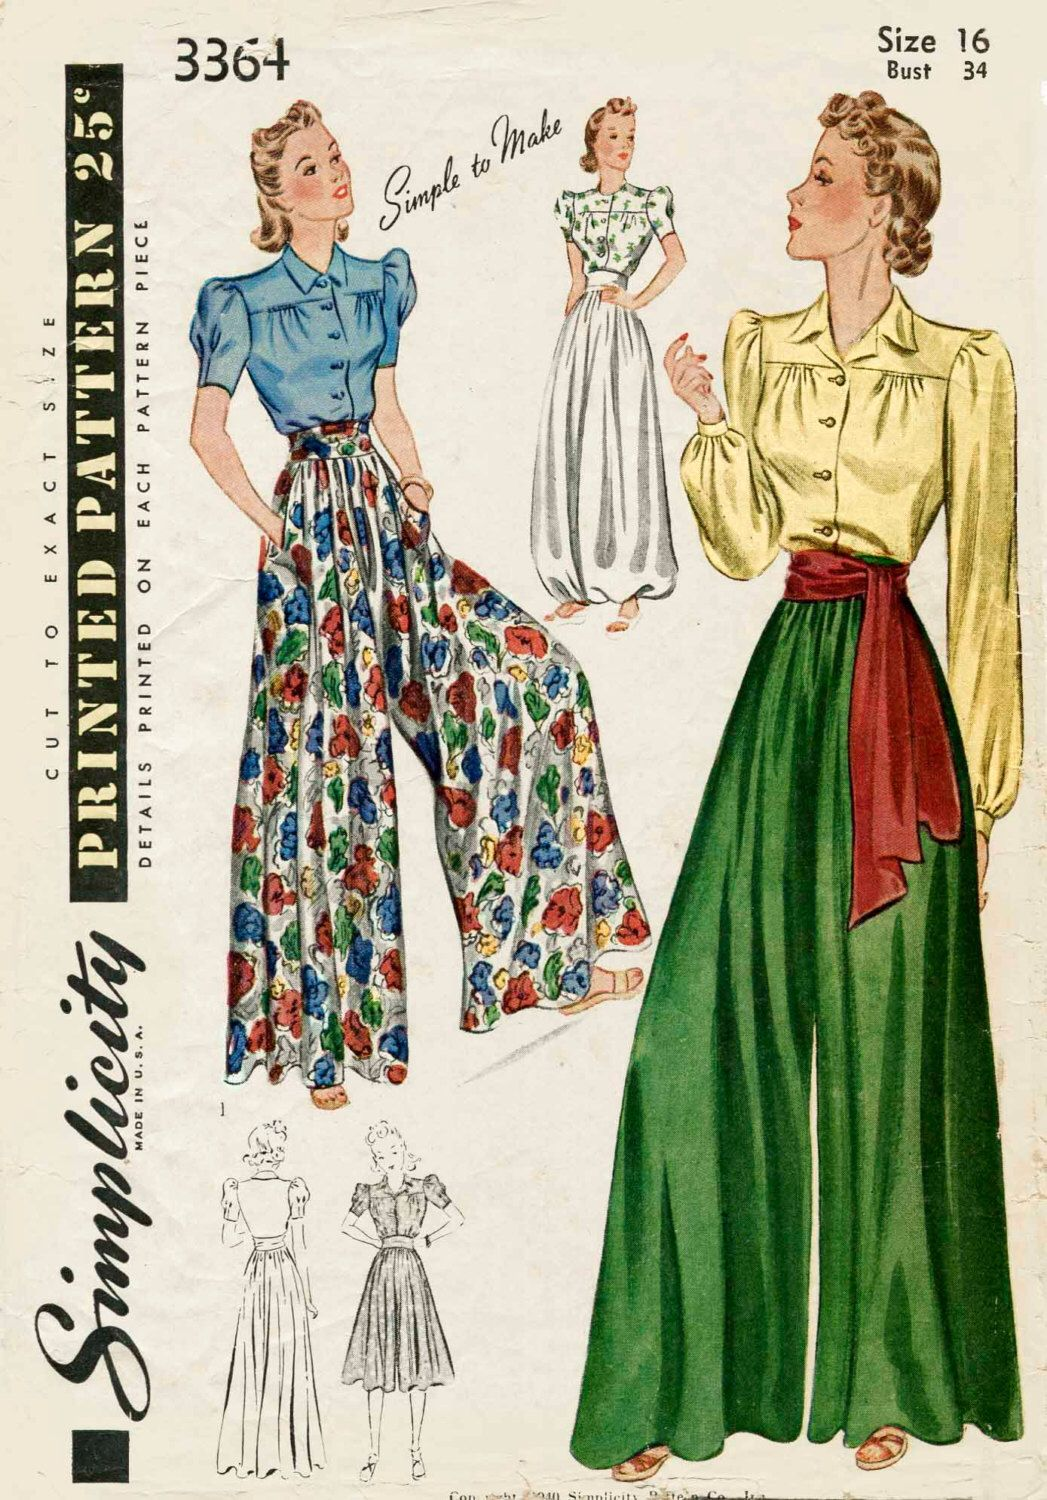 Love those pants!  1930s 1940s vintage sewing pattern palazzo pants wide leg trousers lounge blouse sash belt bust 34 b34 reproduction by LadyMarloweStudios on Etsy https://www.etsy.com/listing/269931363/1930s-1940s-vintage-sewing-pattern